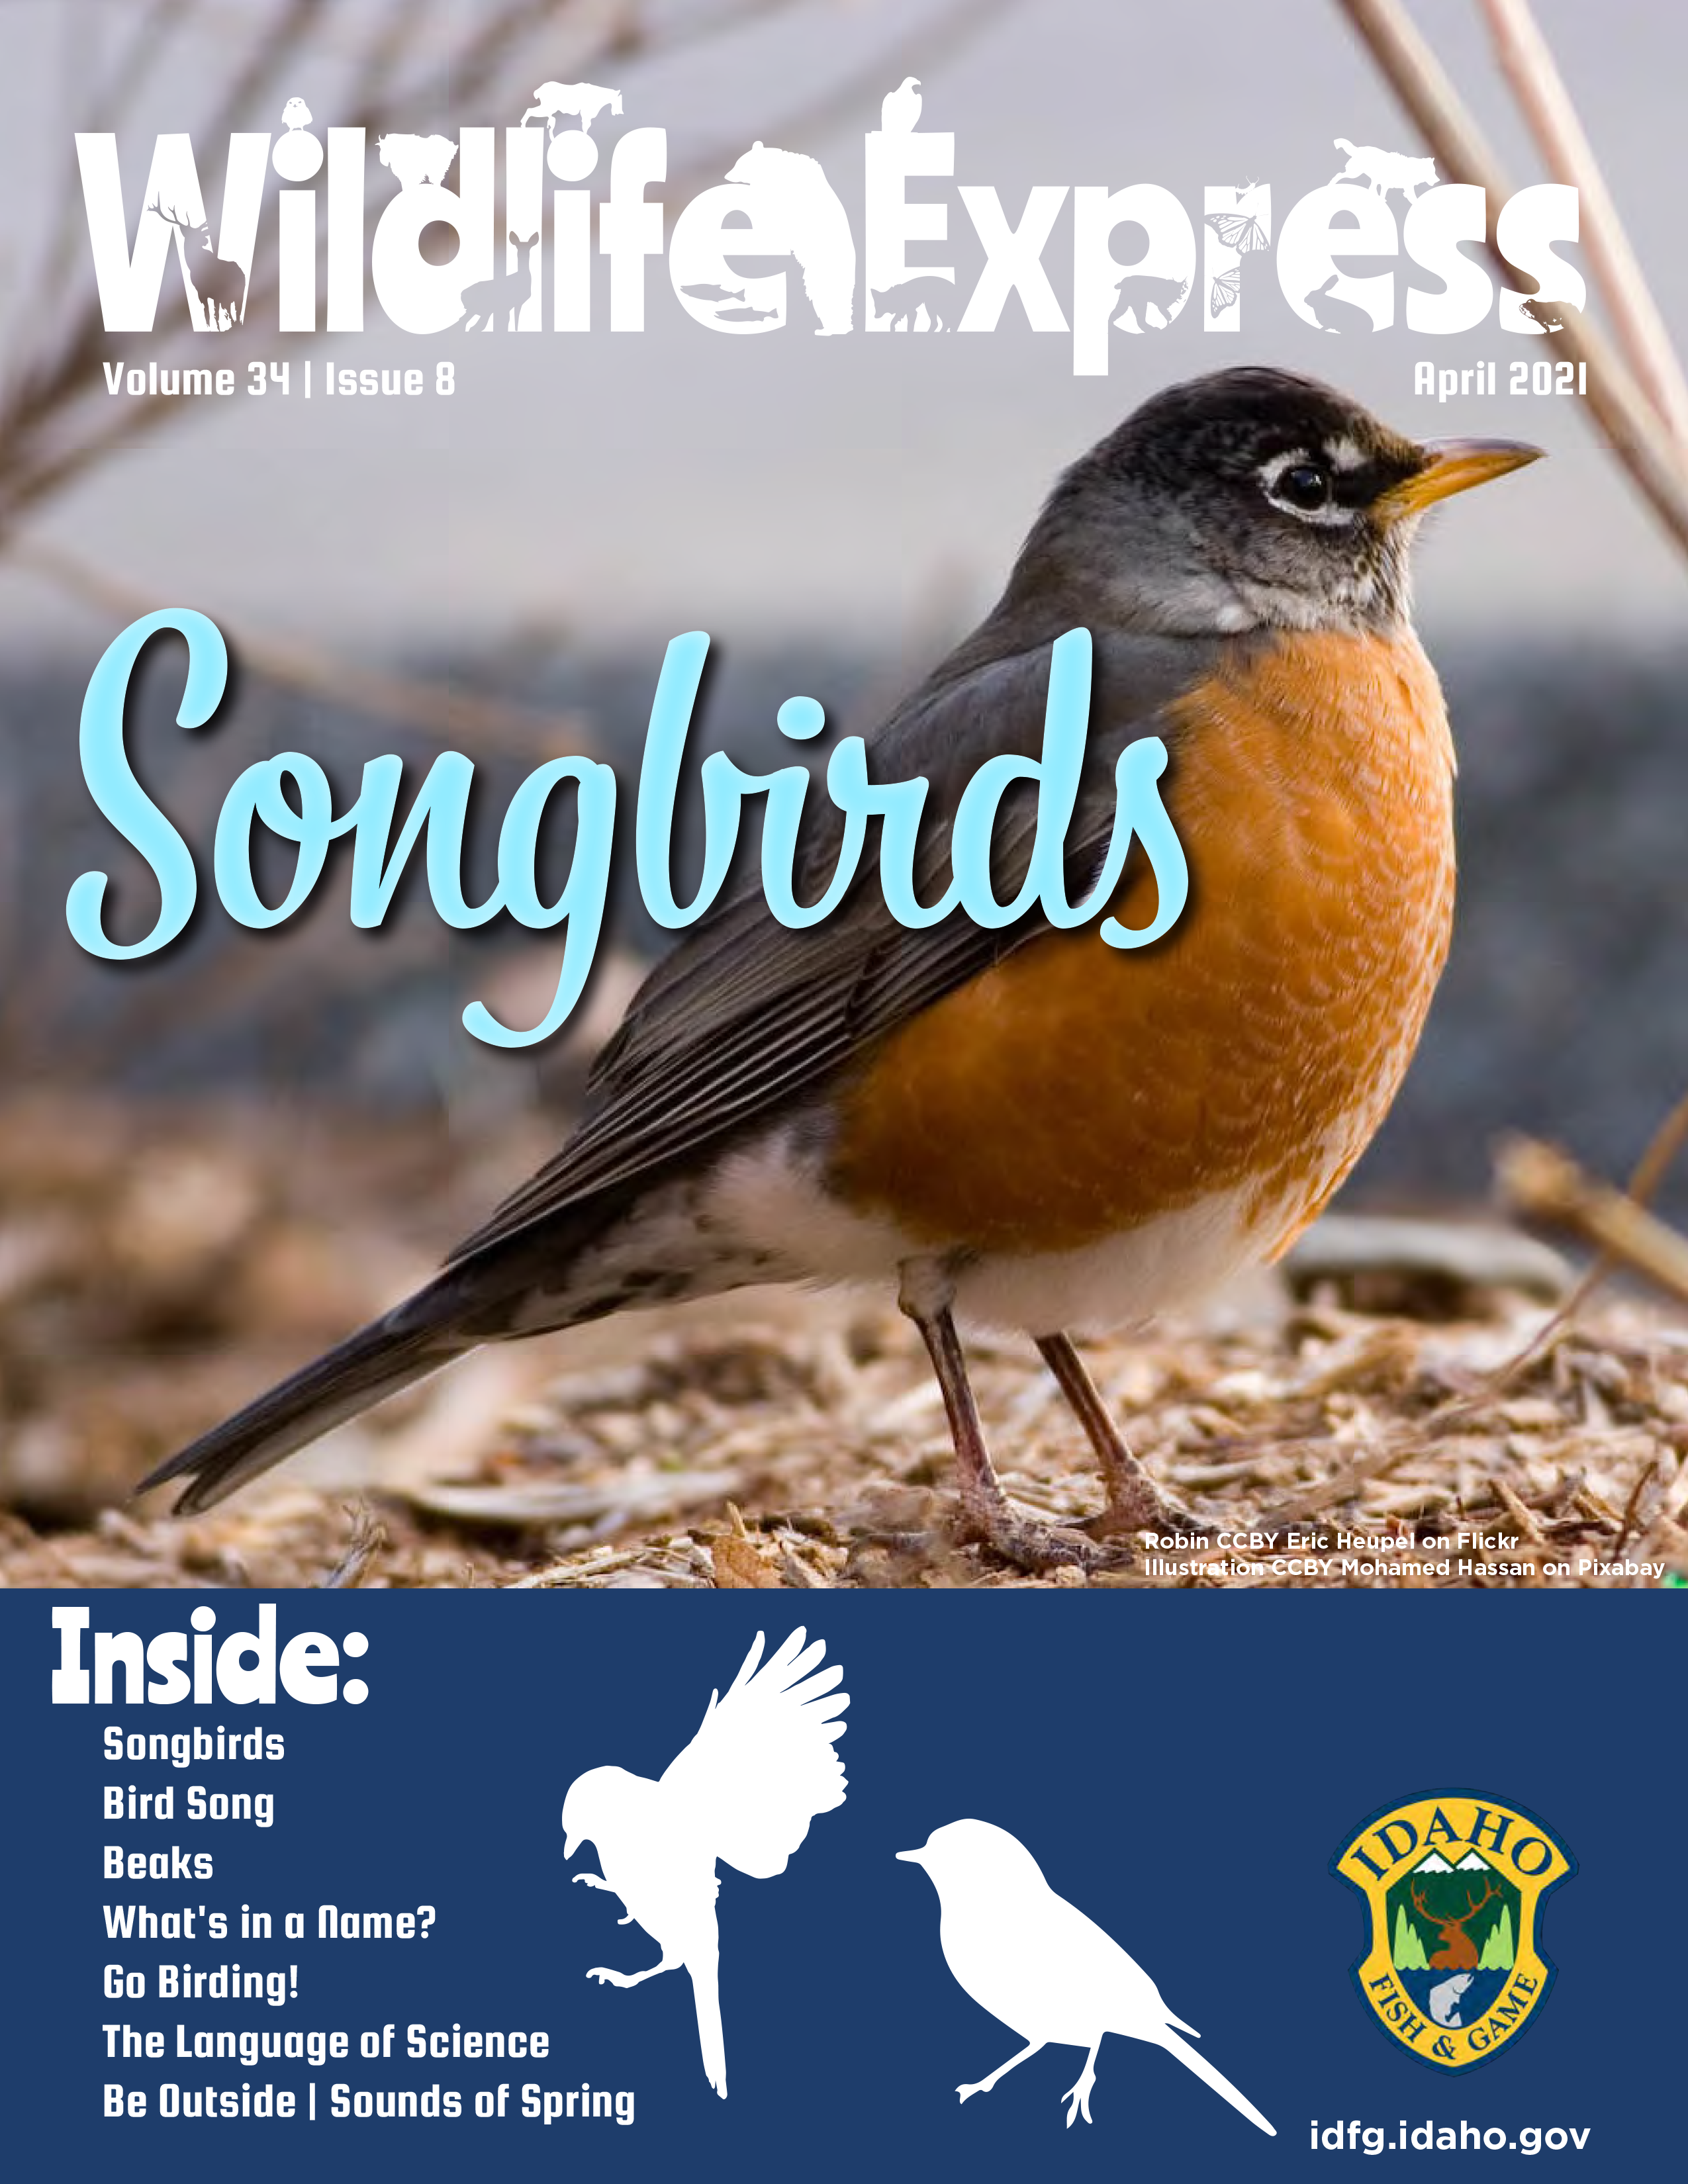 Wildlife Express magazine cover with a small songbird with silver wings and tan breast feathers standing on a pile of twigs.